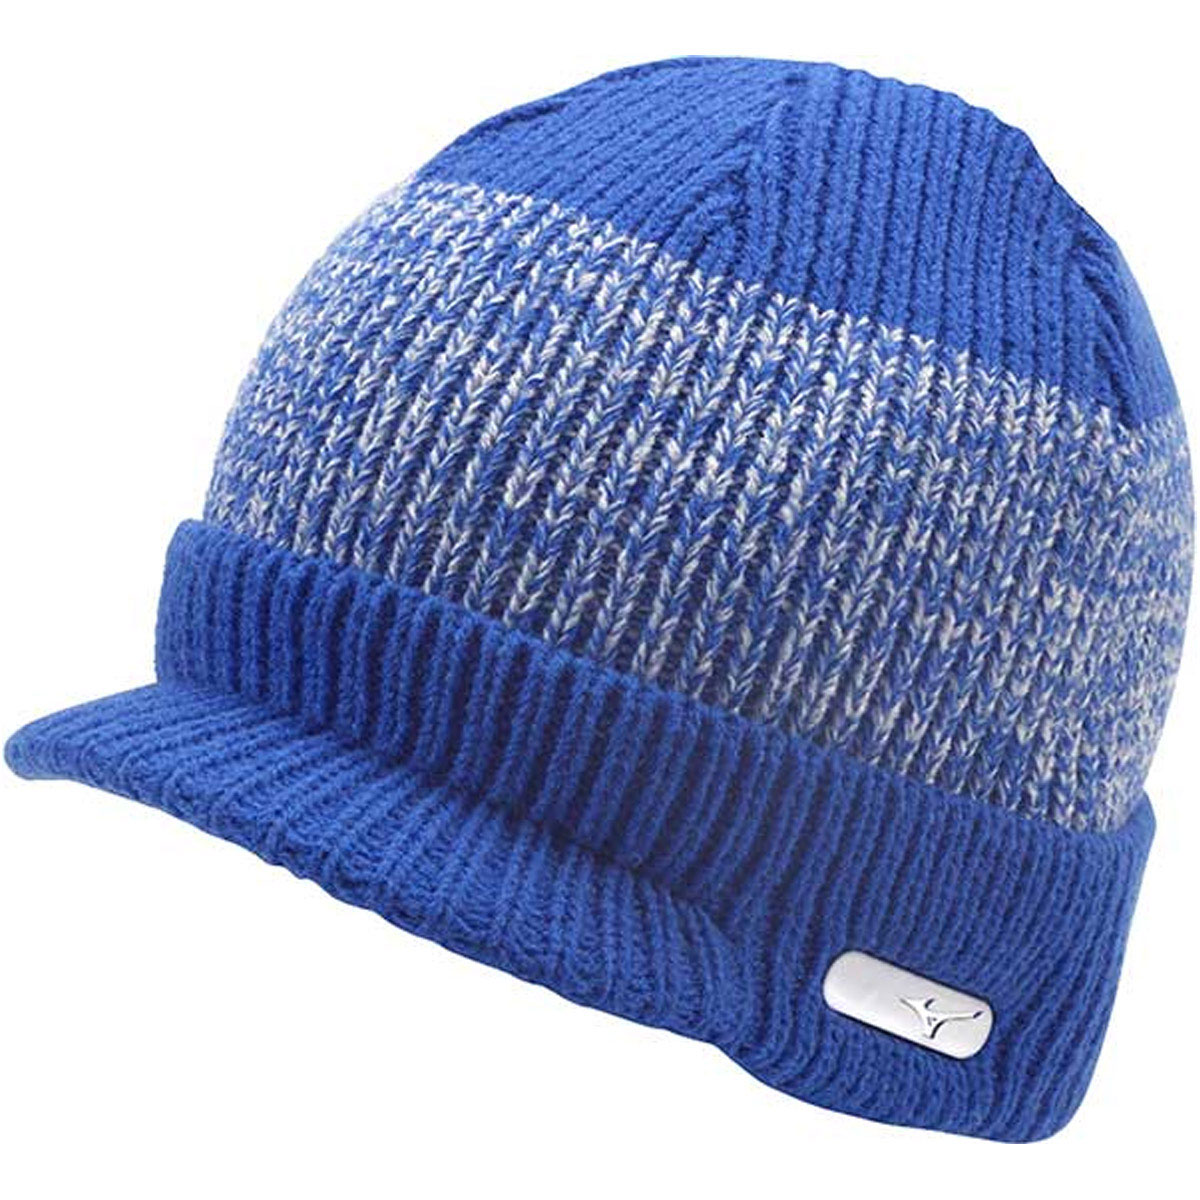 Knitting Pattern For Peaked Beanie : 37% OFF RRP Mizuno Golf 2015 Mens Peaked Beanie Warm ...